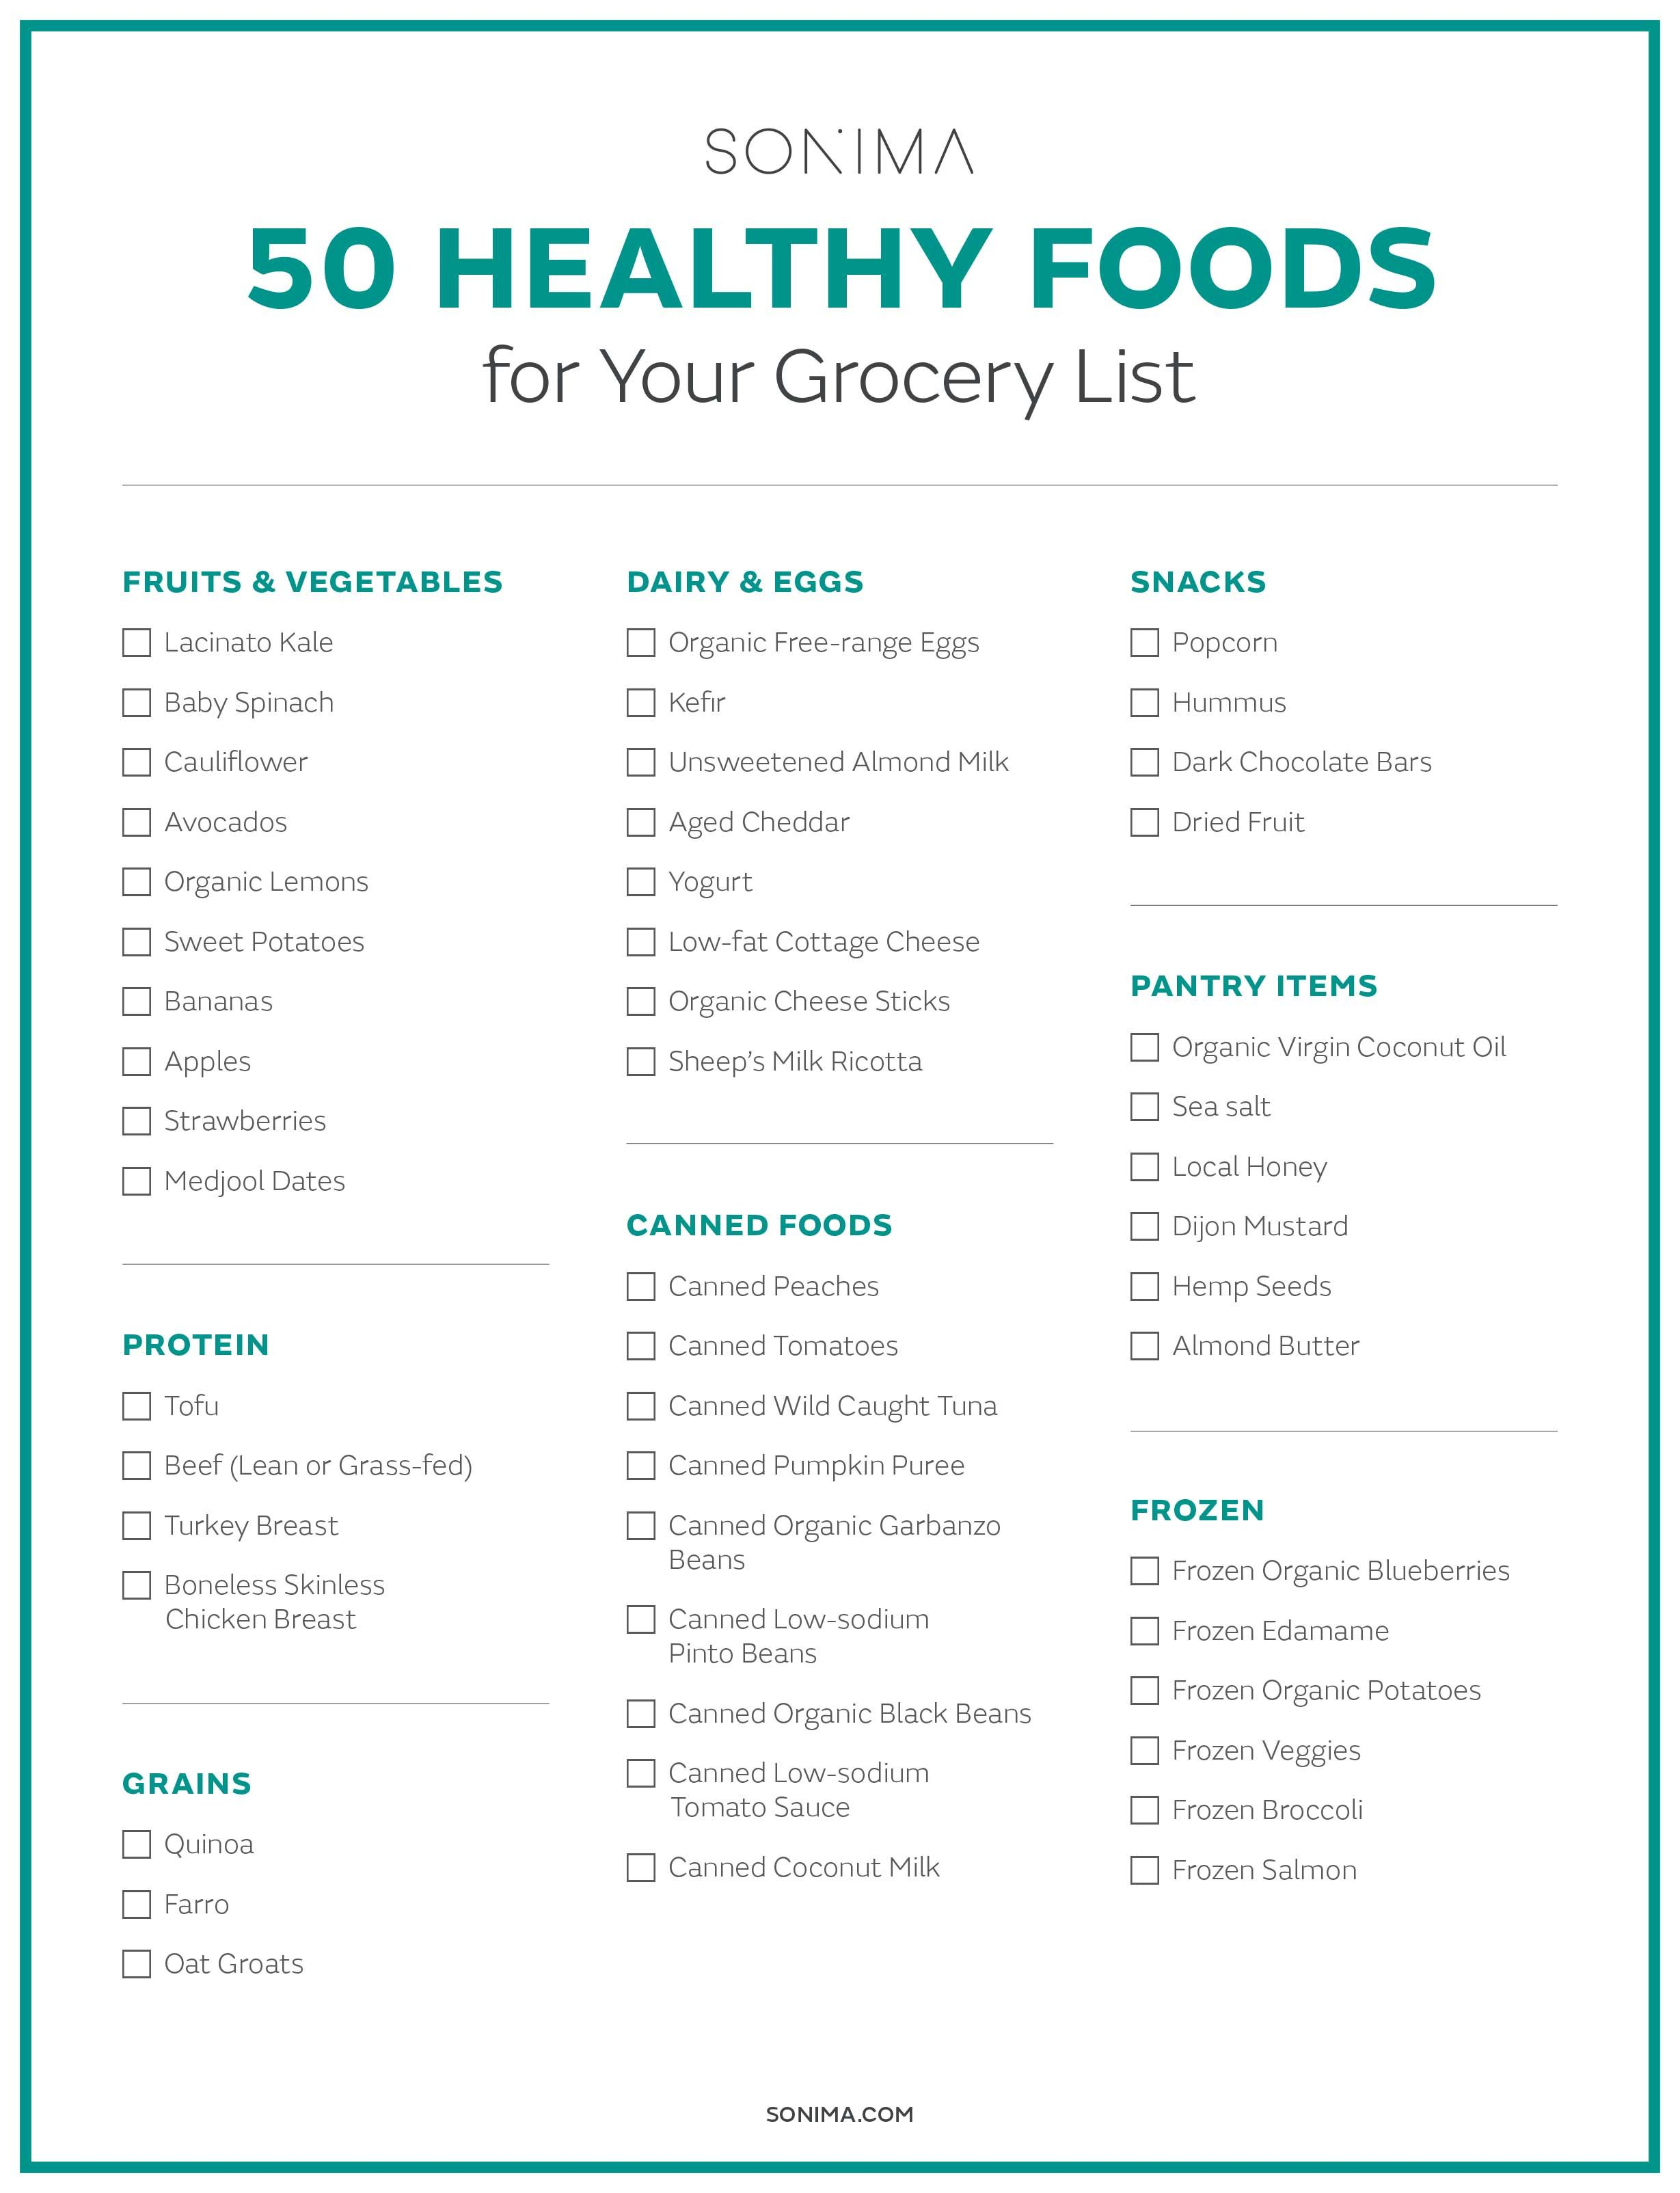 50 Healthy Foods To Add To Your Grocery List